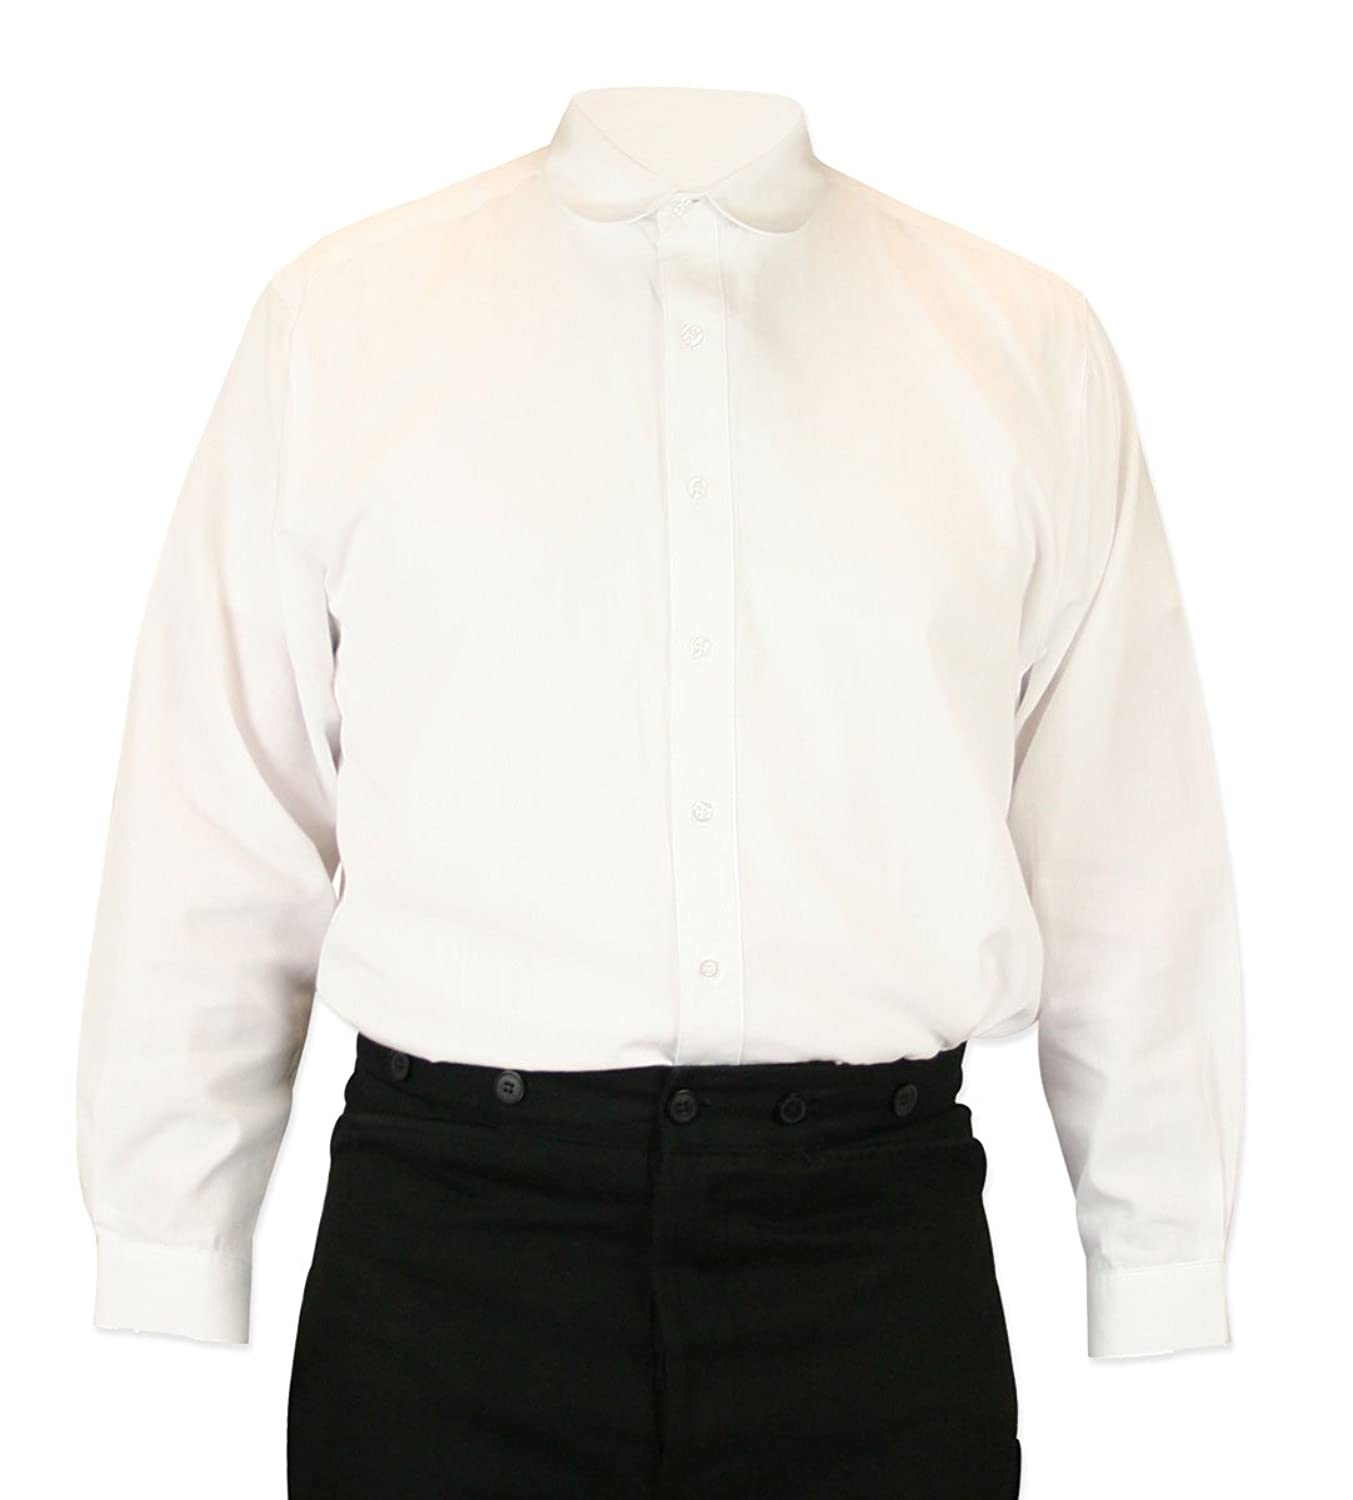 Edwardian Men's Fashion & Clothing Virgil Club Collar Dress Shirt $59.95 AT vintagedancer.com